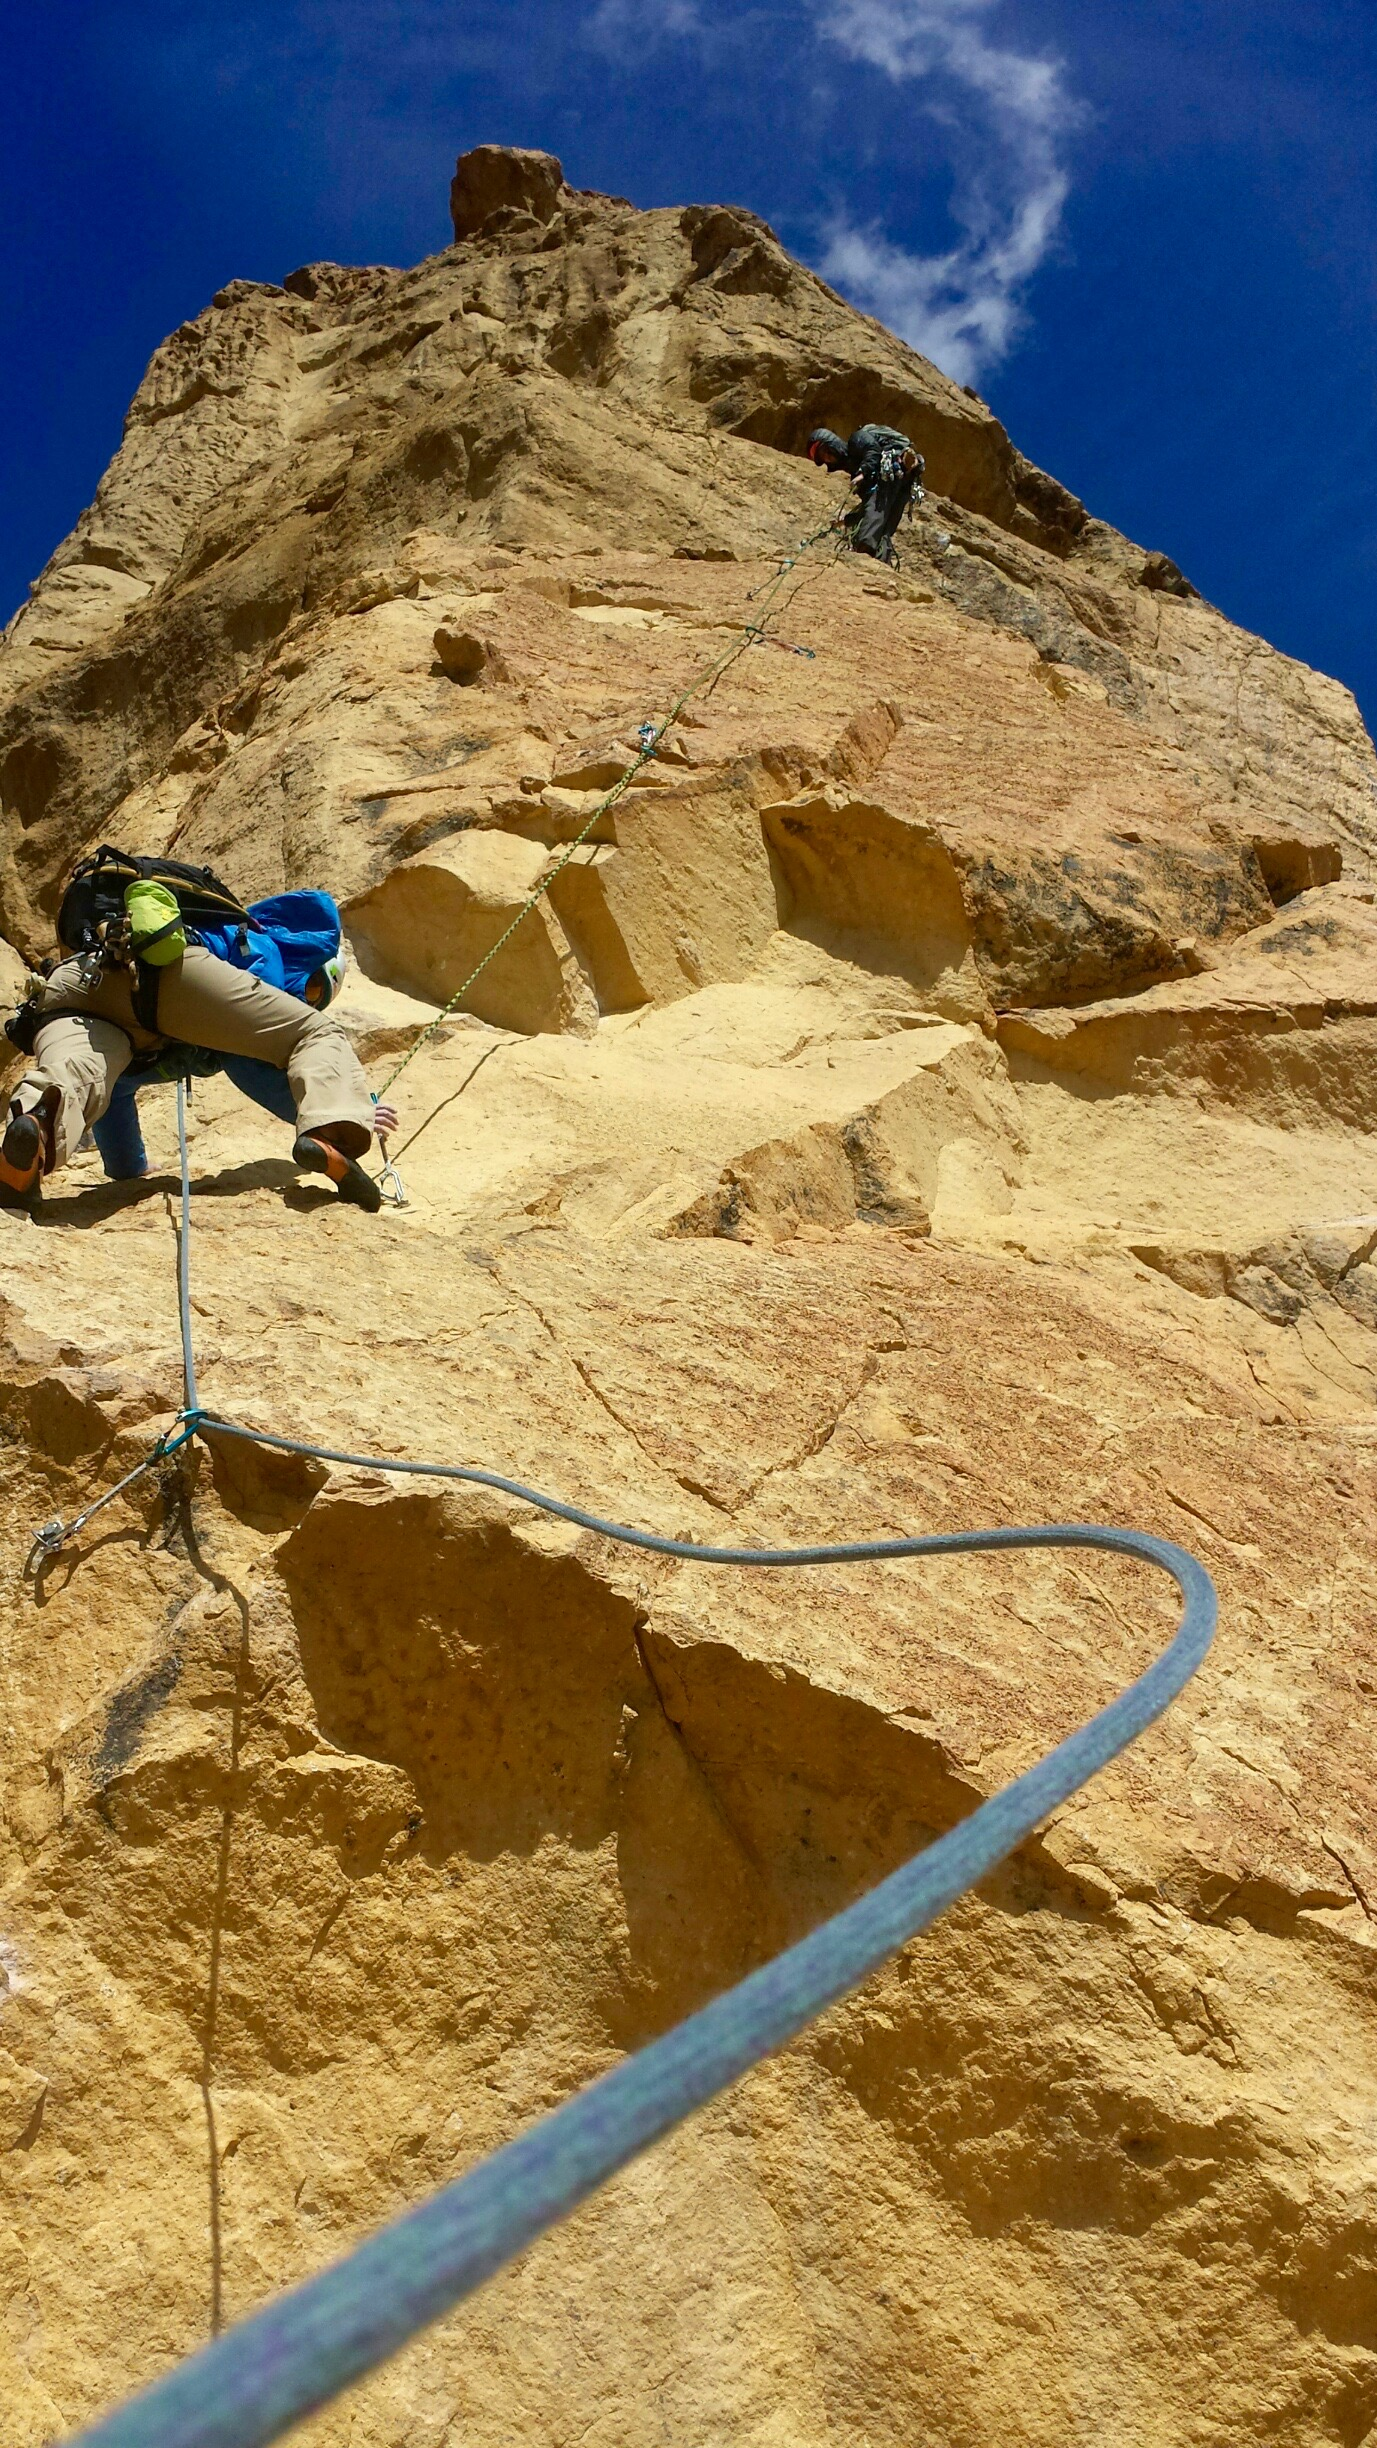 San Francisco Multi-Pitch Rock Climbing